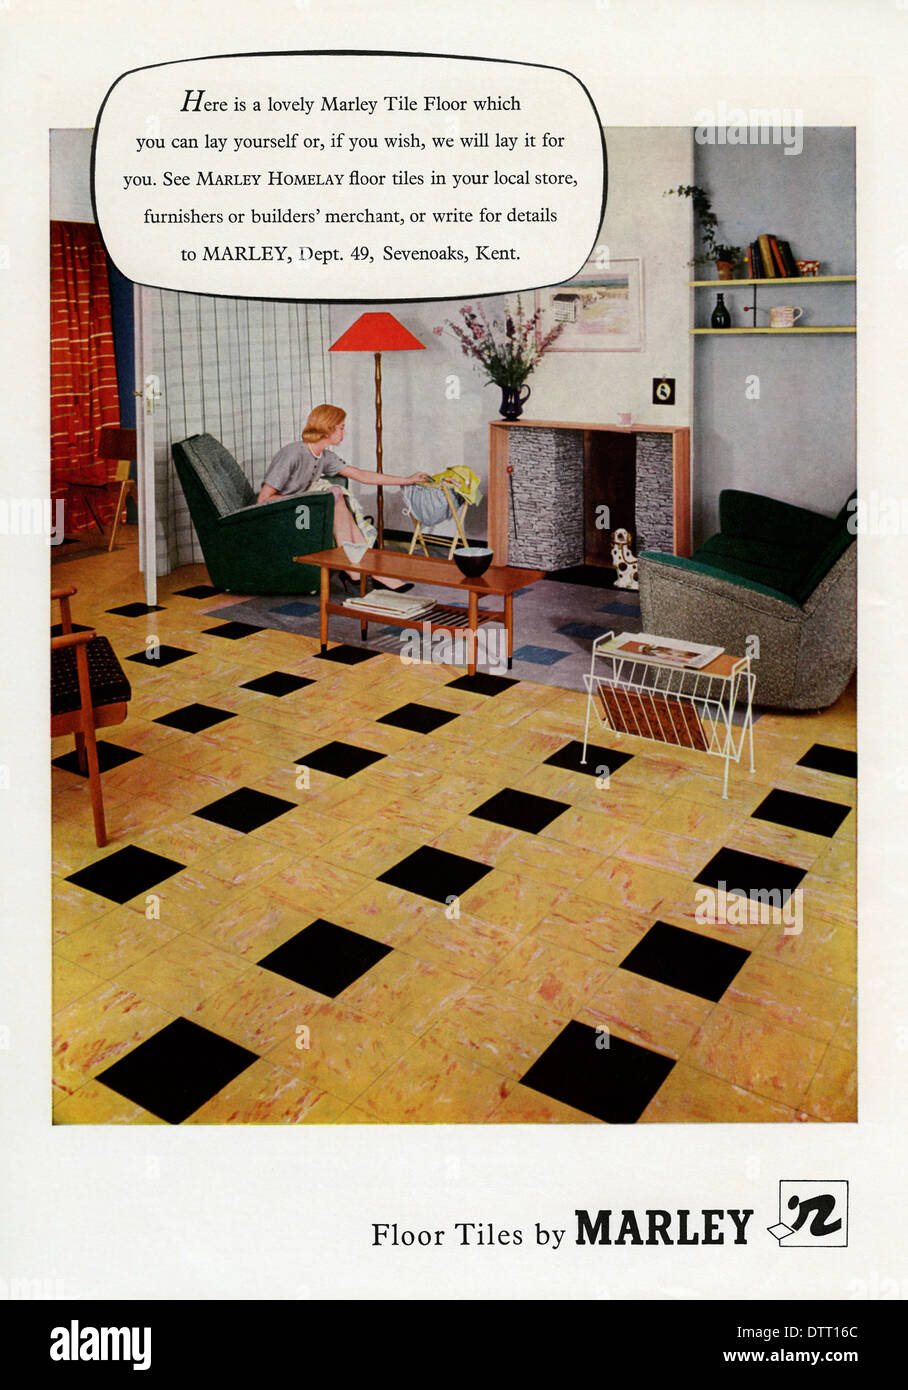 Old advert for marley floor tiles these were hard wearing laminated old advert for marley floor tiles these were hard wearing laminated tiles the advert appeared in a magazine in 1956 dailygadgetfo Images